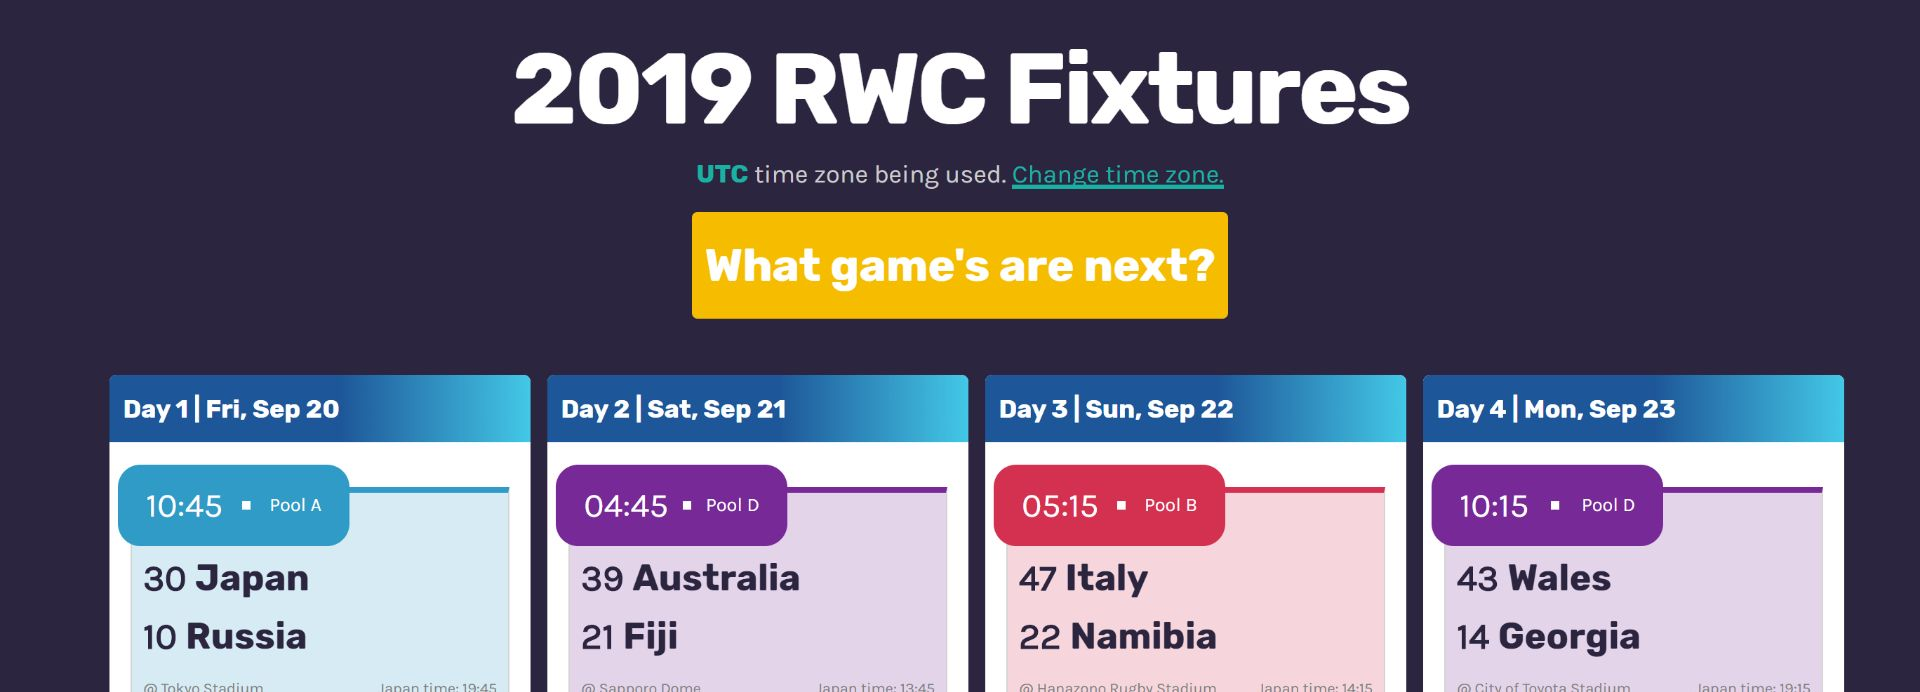 How I would build my 2019 Rugby World Cup fixtures site differently next time.